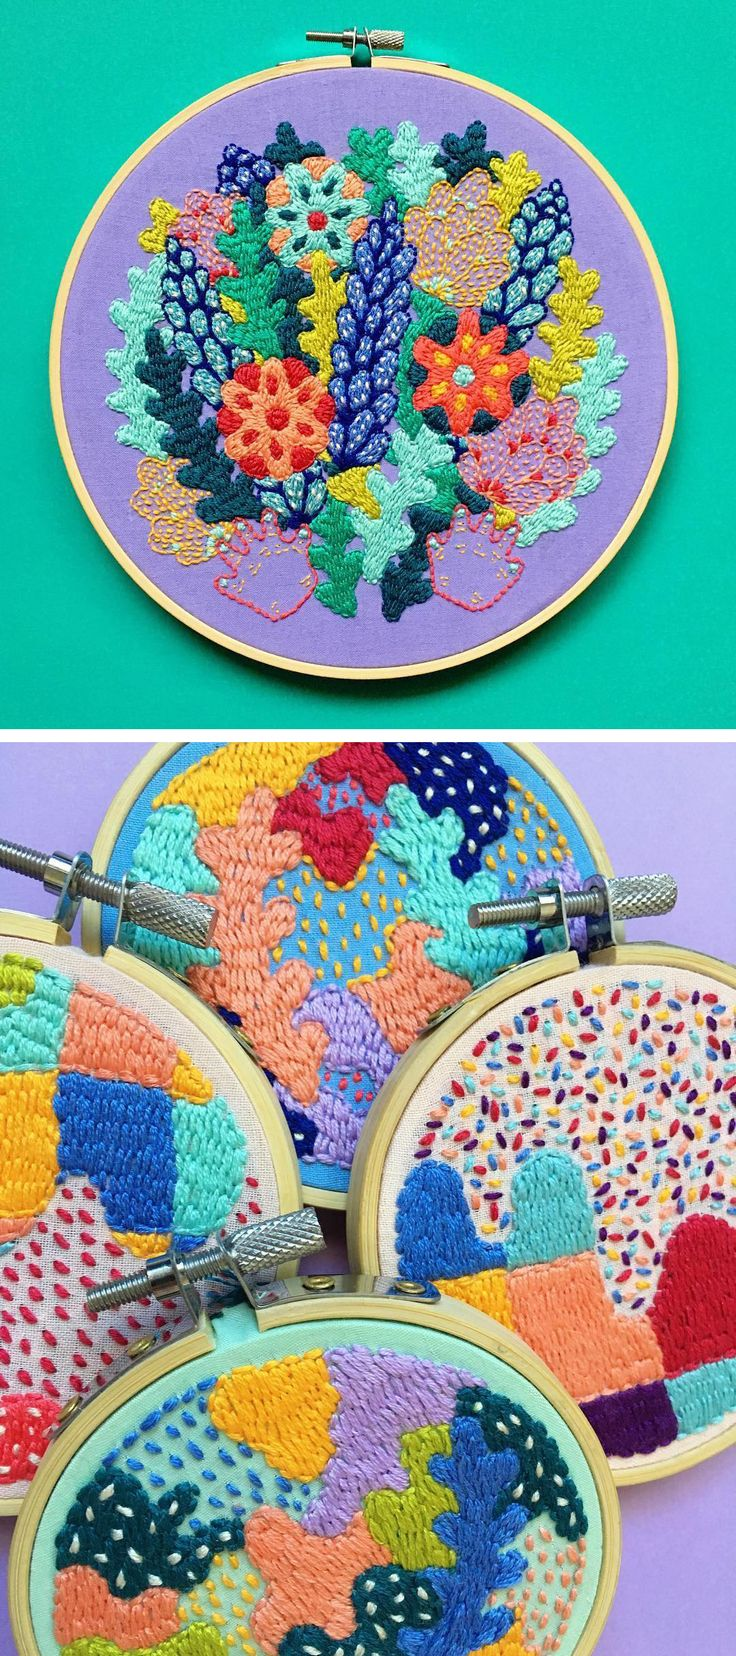 Colorful contemporary embroidery by Kelly Ryan | modern embroidery | colorful hoop art